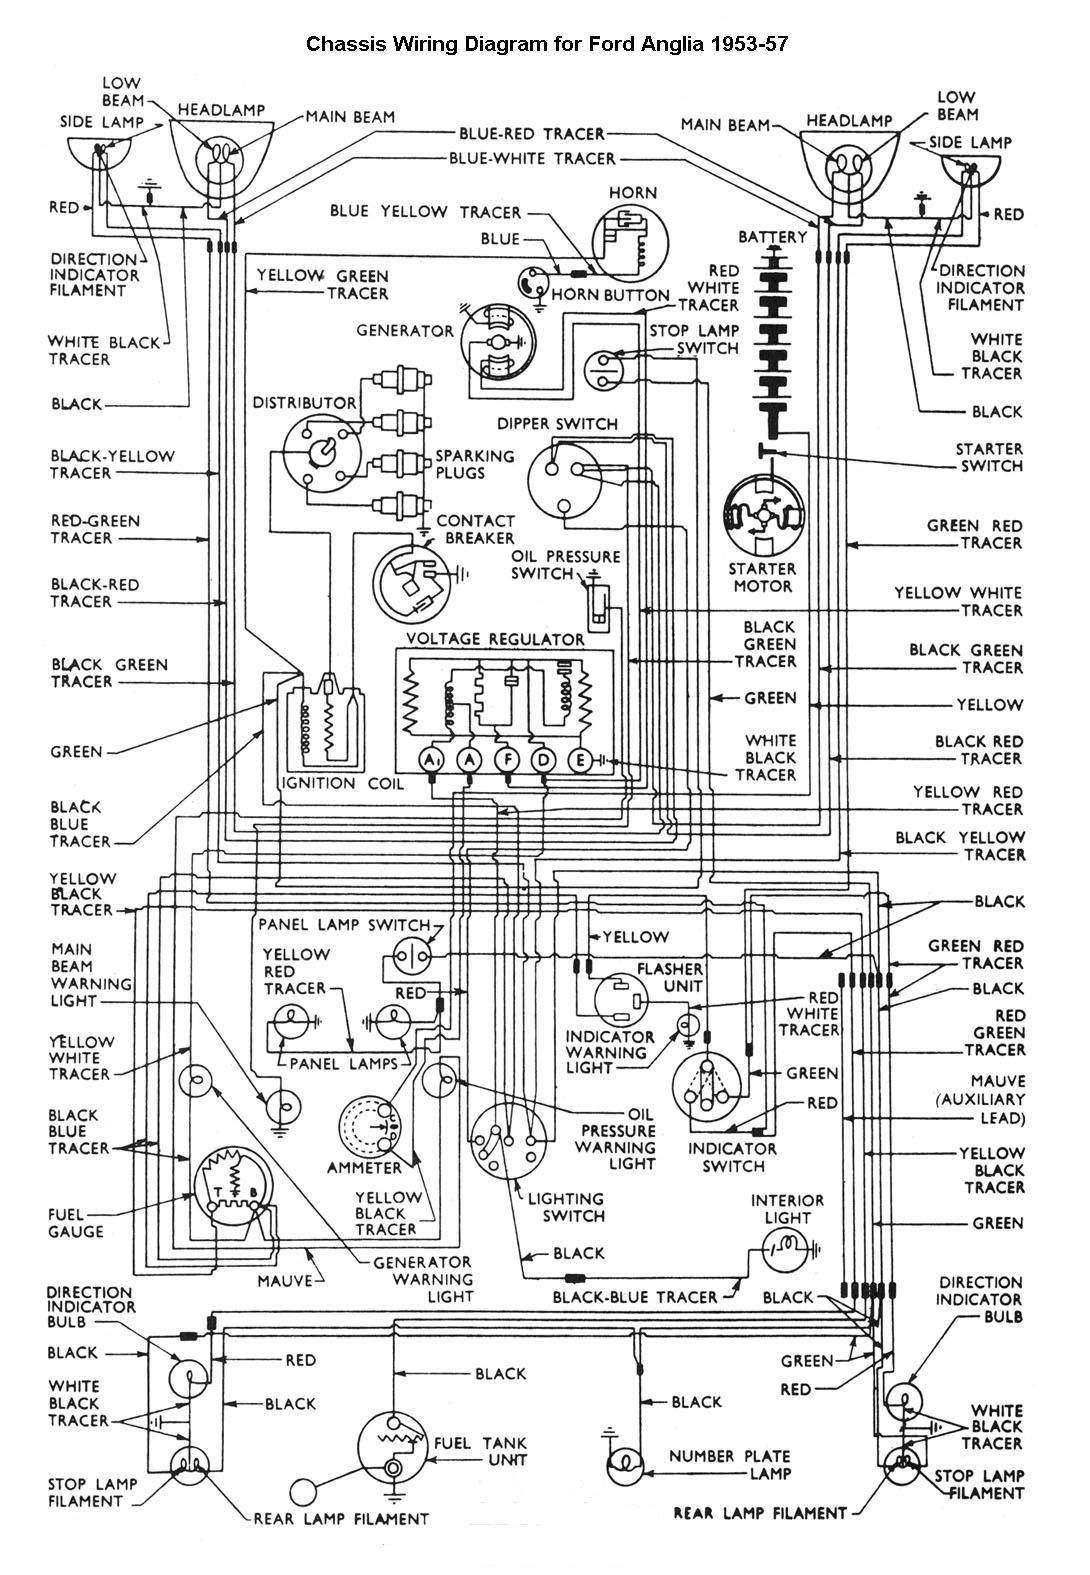 Awesome Car Wiring Diagram Mech Truck Repair Cars Motor Car Wiring Digital Resources Dimetprontobusorg